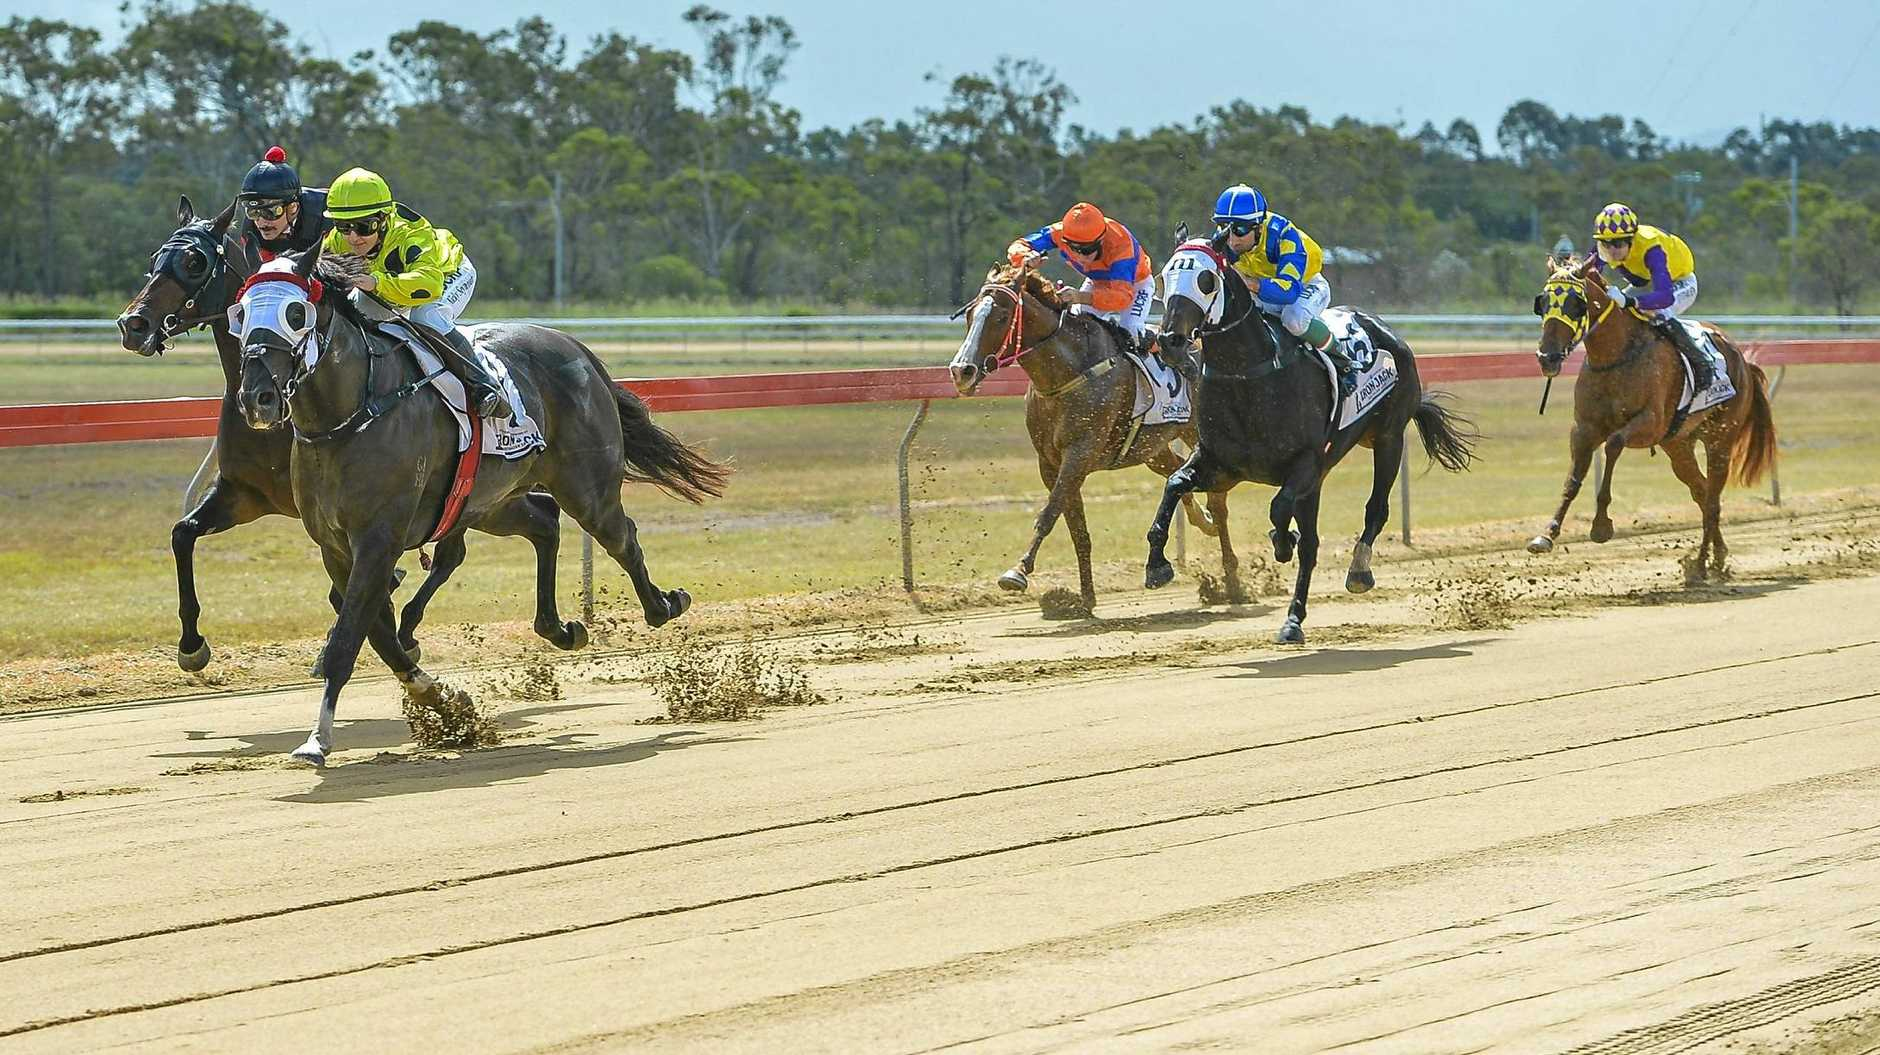 William Melvin-trained More Worldly won the Matty Peters On The Bit race one ahead of Rosinca.